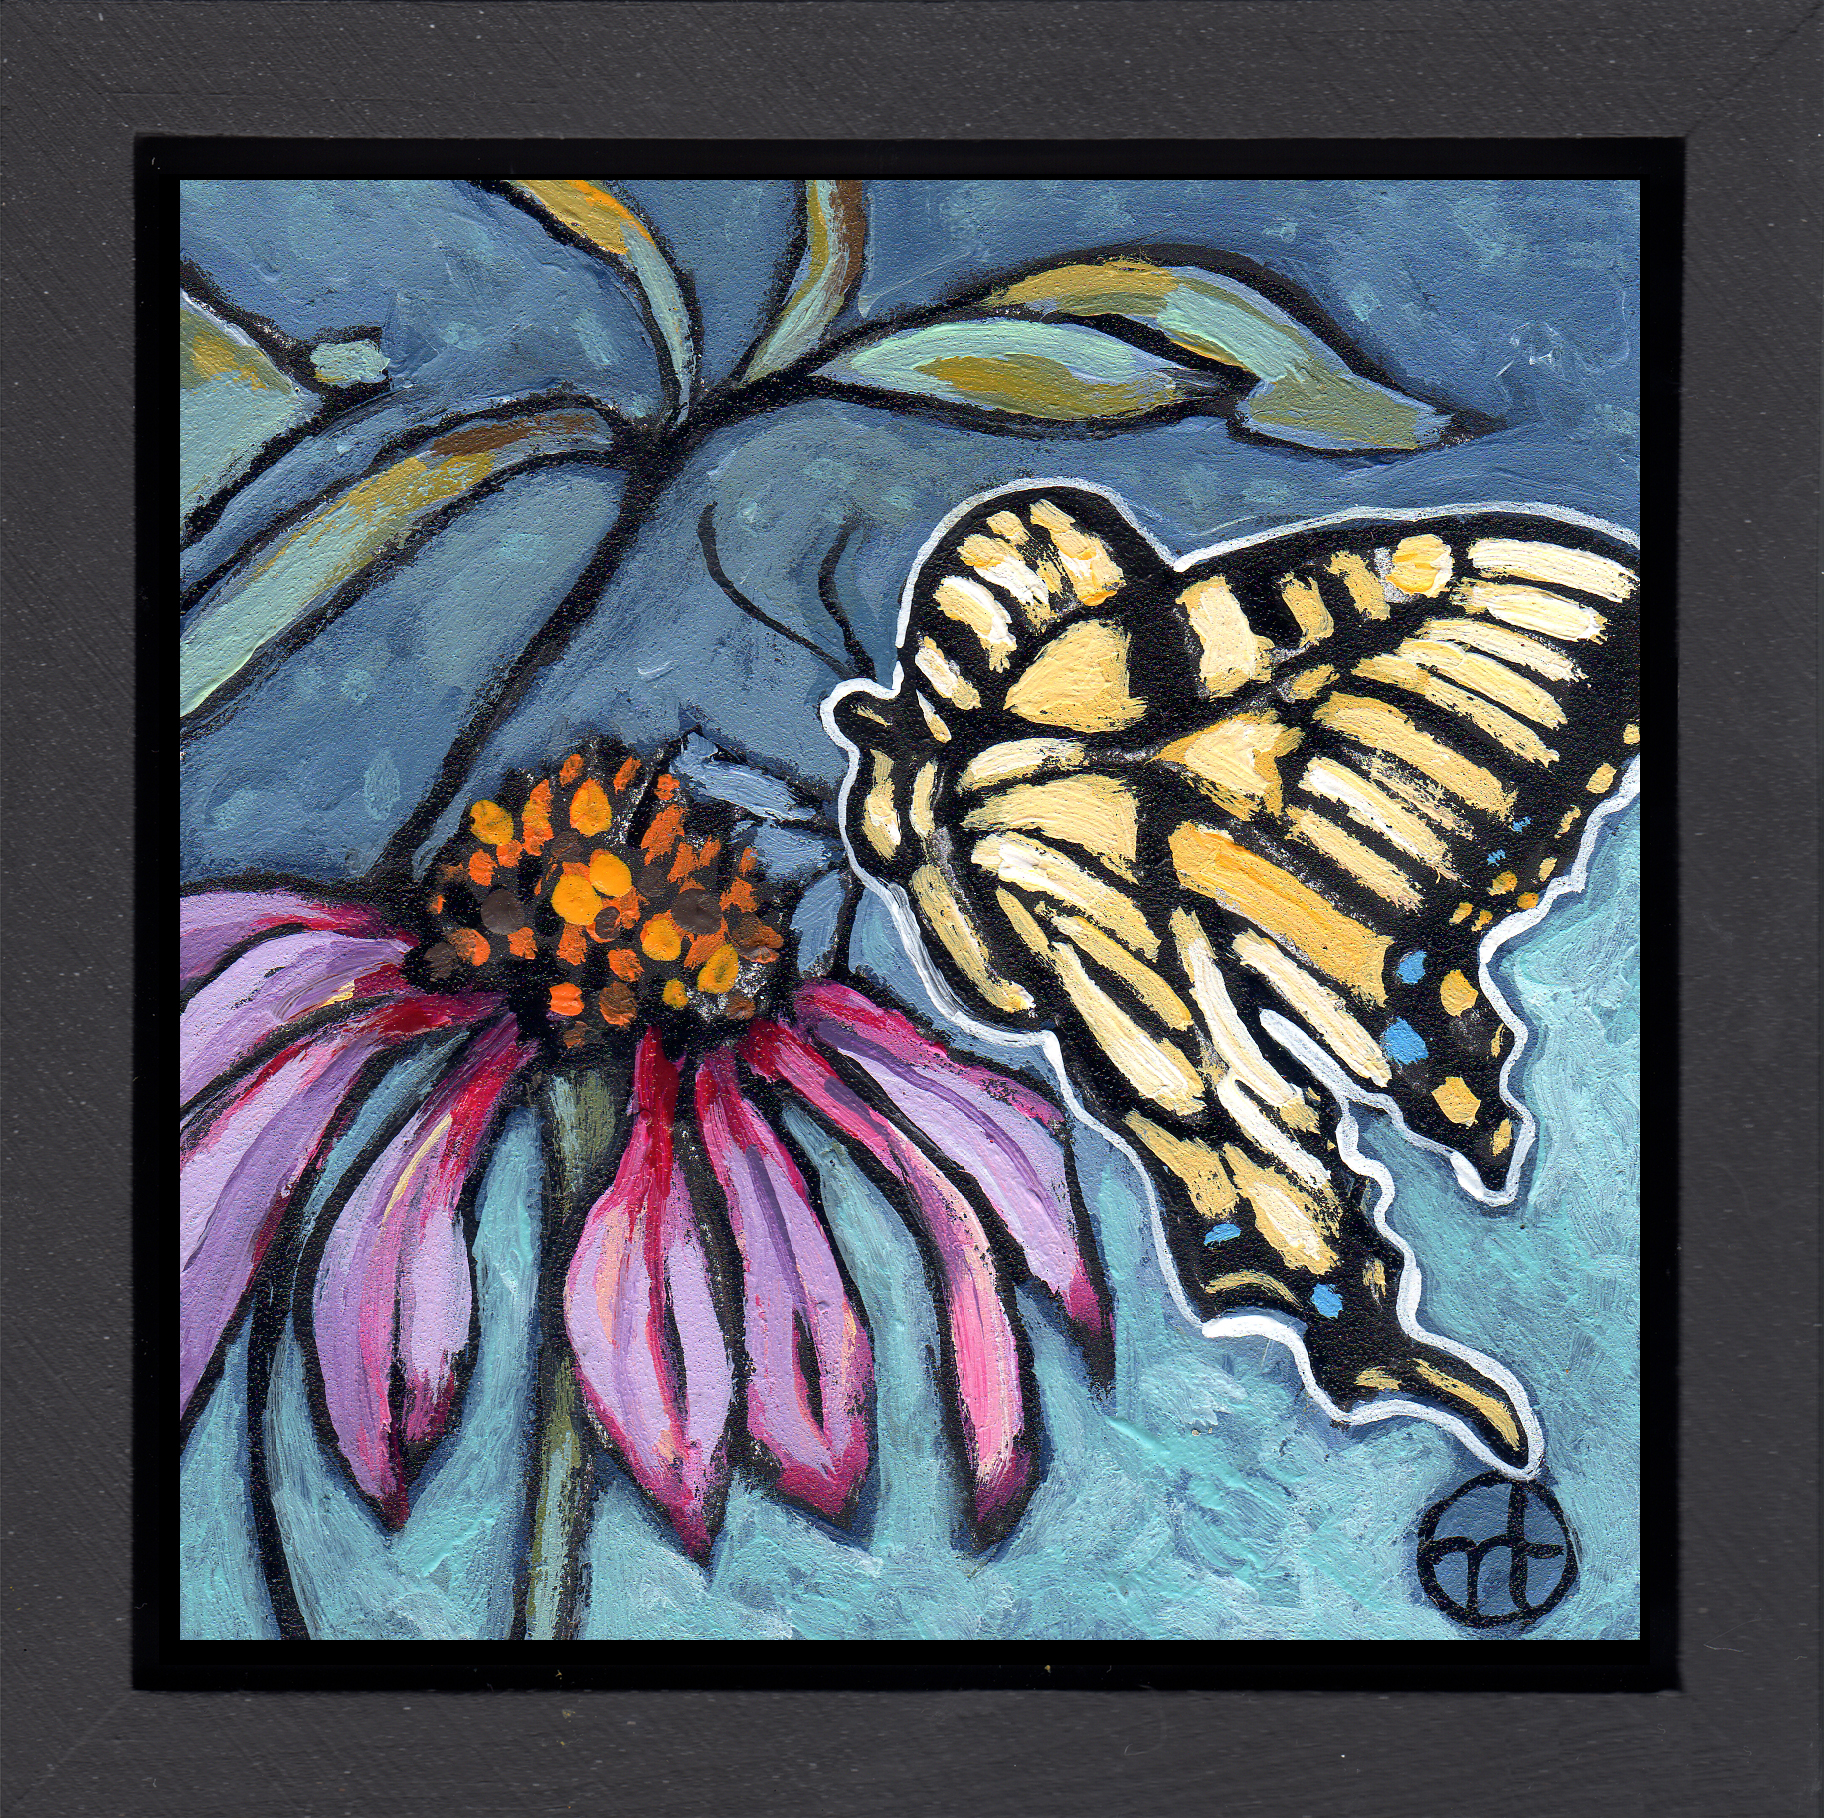 Sold.  It's day 9 of the butterfly challenge and I'm posting two paintings inspired by photos sent to me by a fantastic stained glass artist.  acrylic on wood  6.5 x 6.5 inches, 1.5 inch deep wood frame